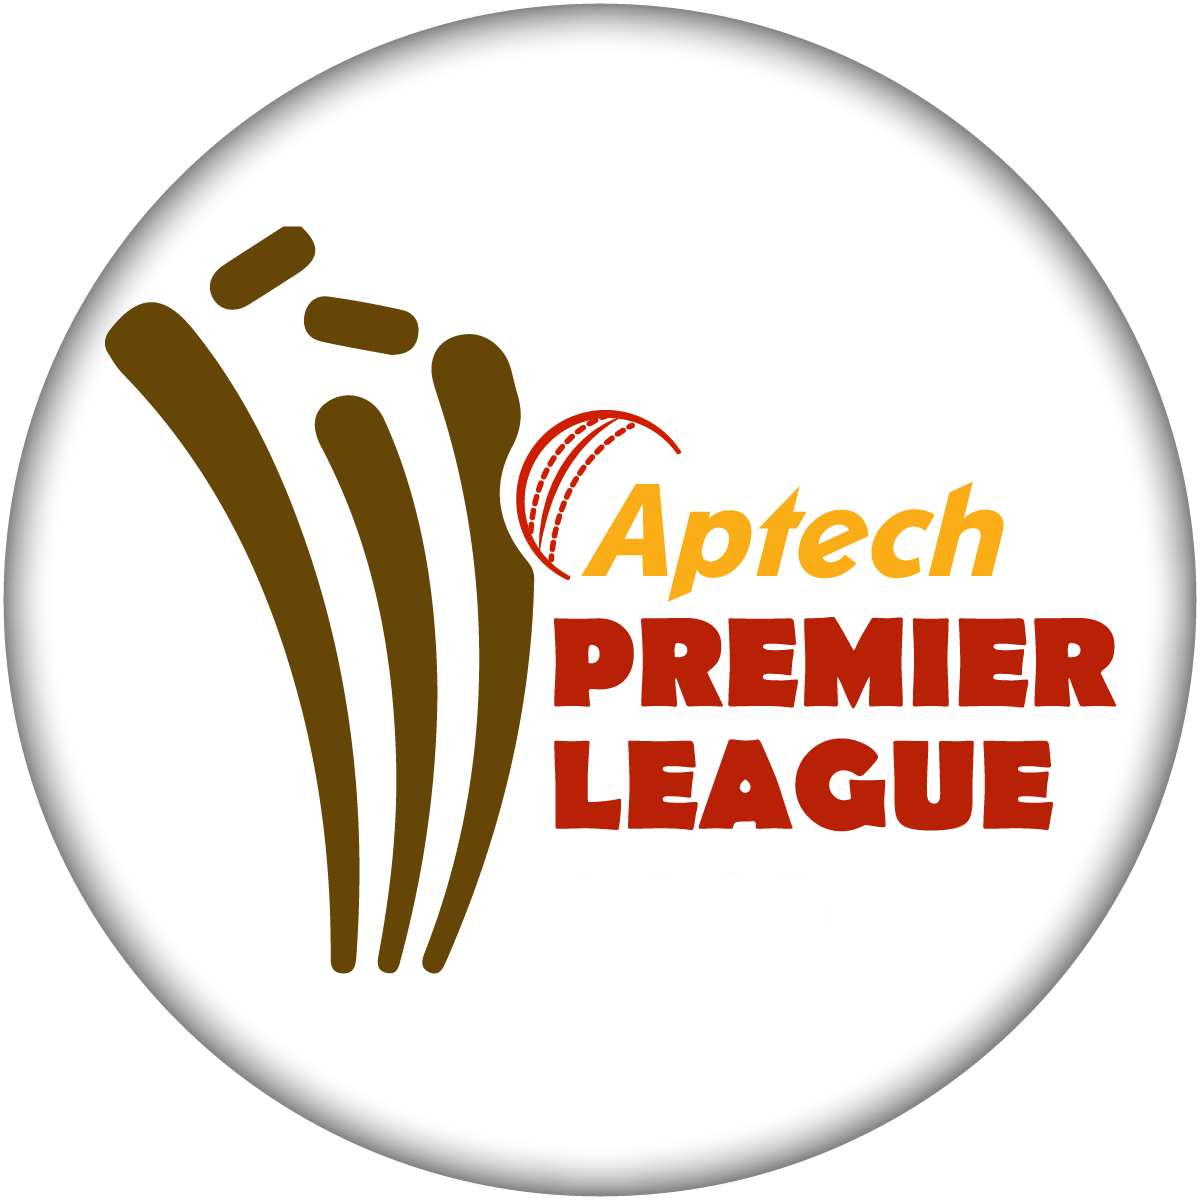 Aptech Premier League